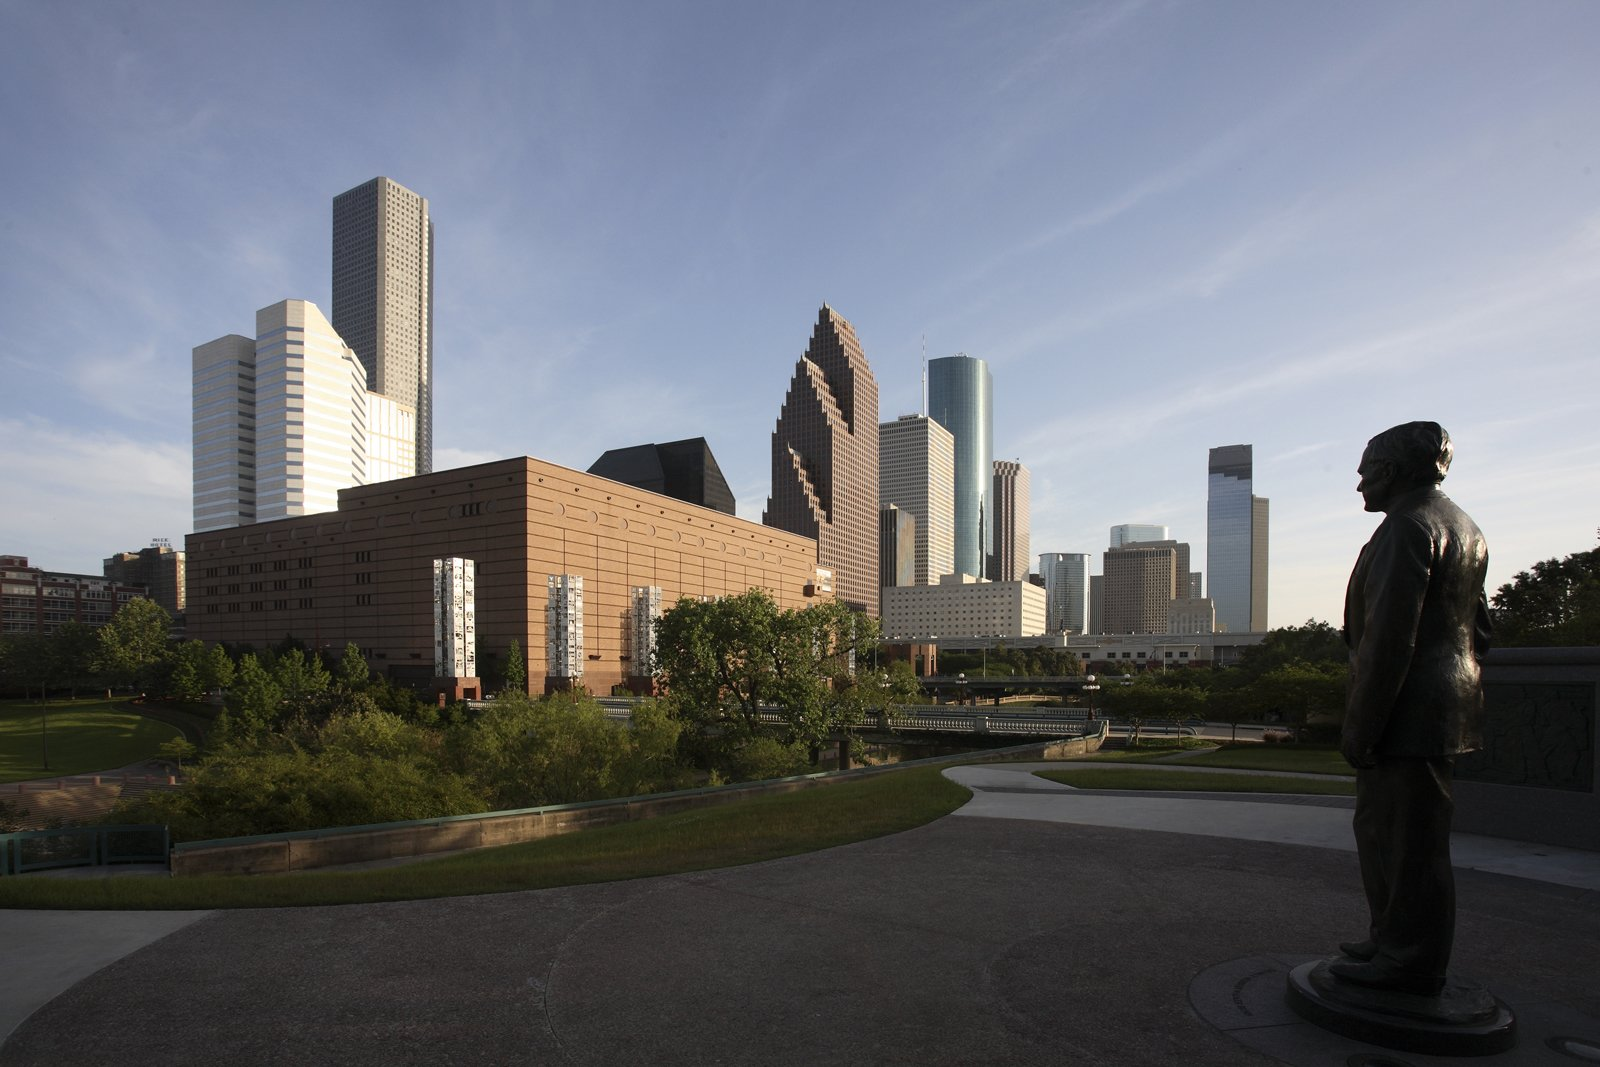 A view of the Houston skyline, with the Wortham Theater Center and the George Bush Monument in the forefront.  Photo 2 of 17 in Houston, Texas